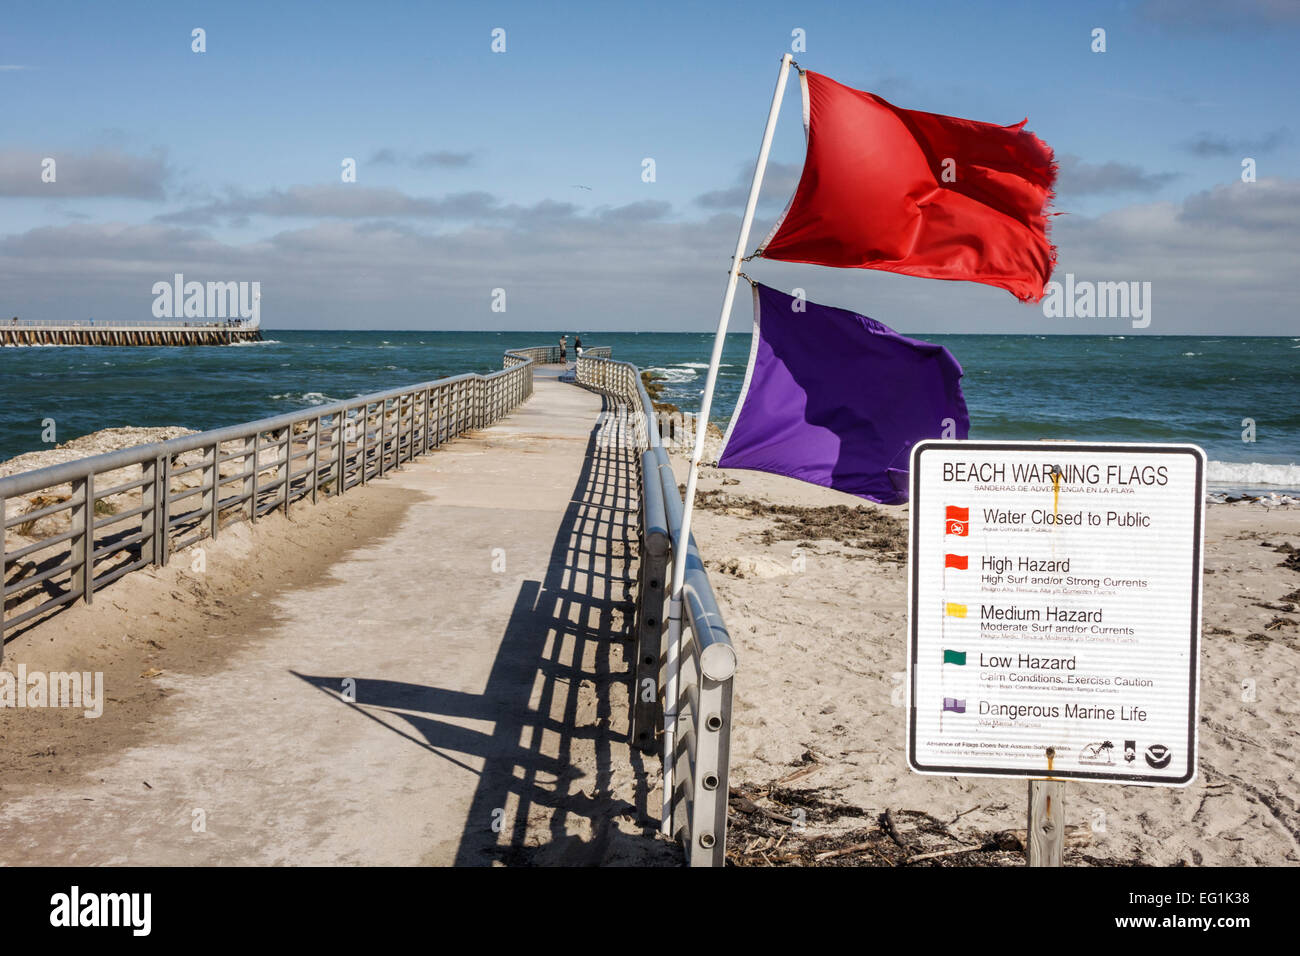 Warning Flags Stock Photos & Warning Flags Stock Images - Alamy